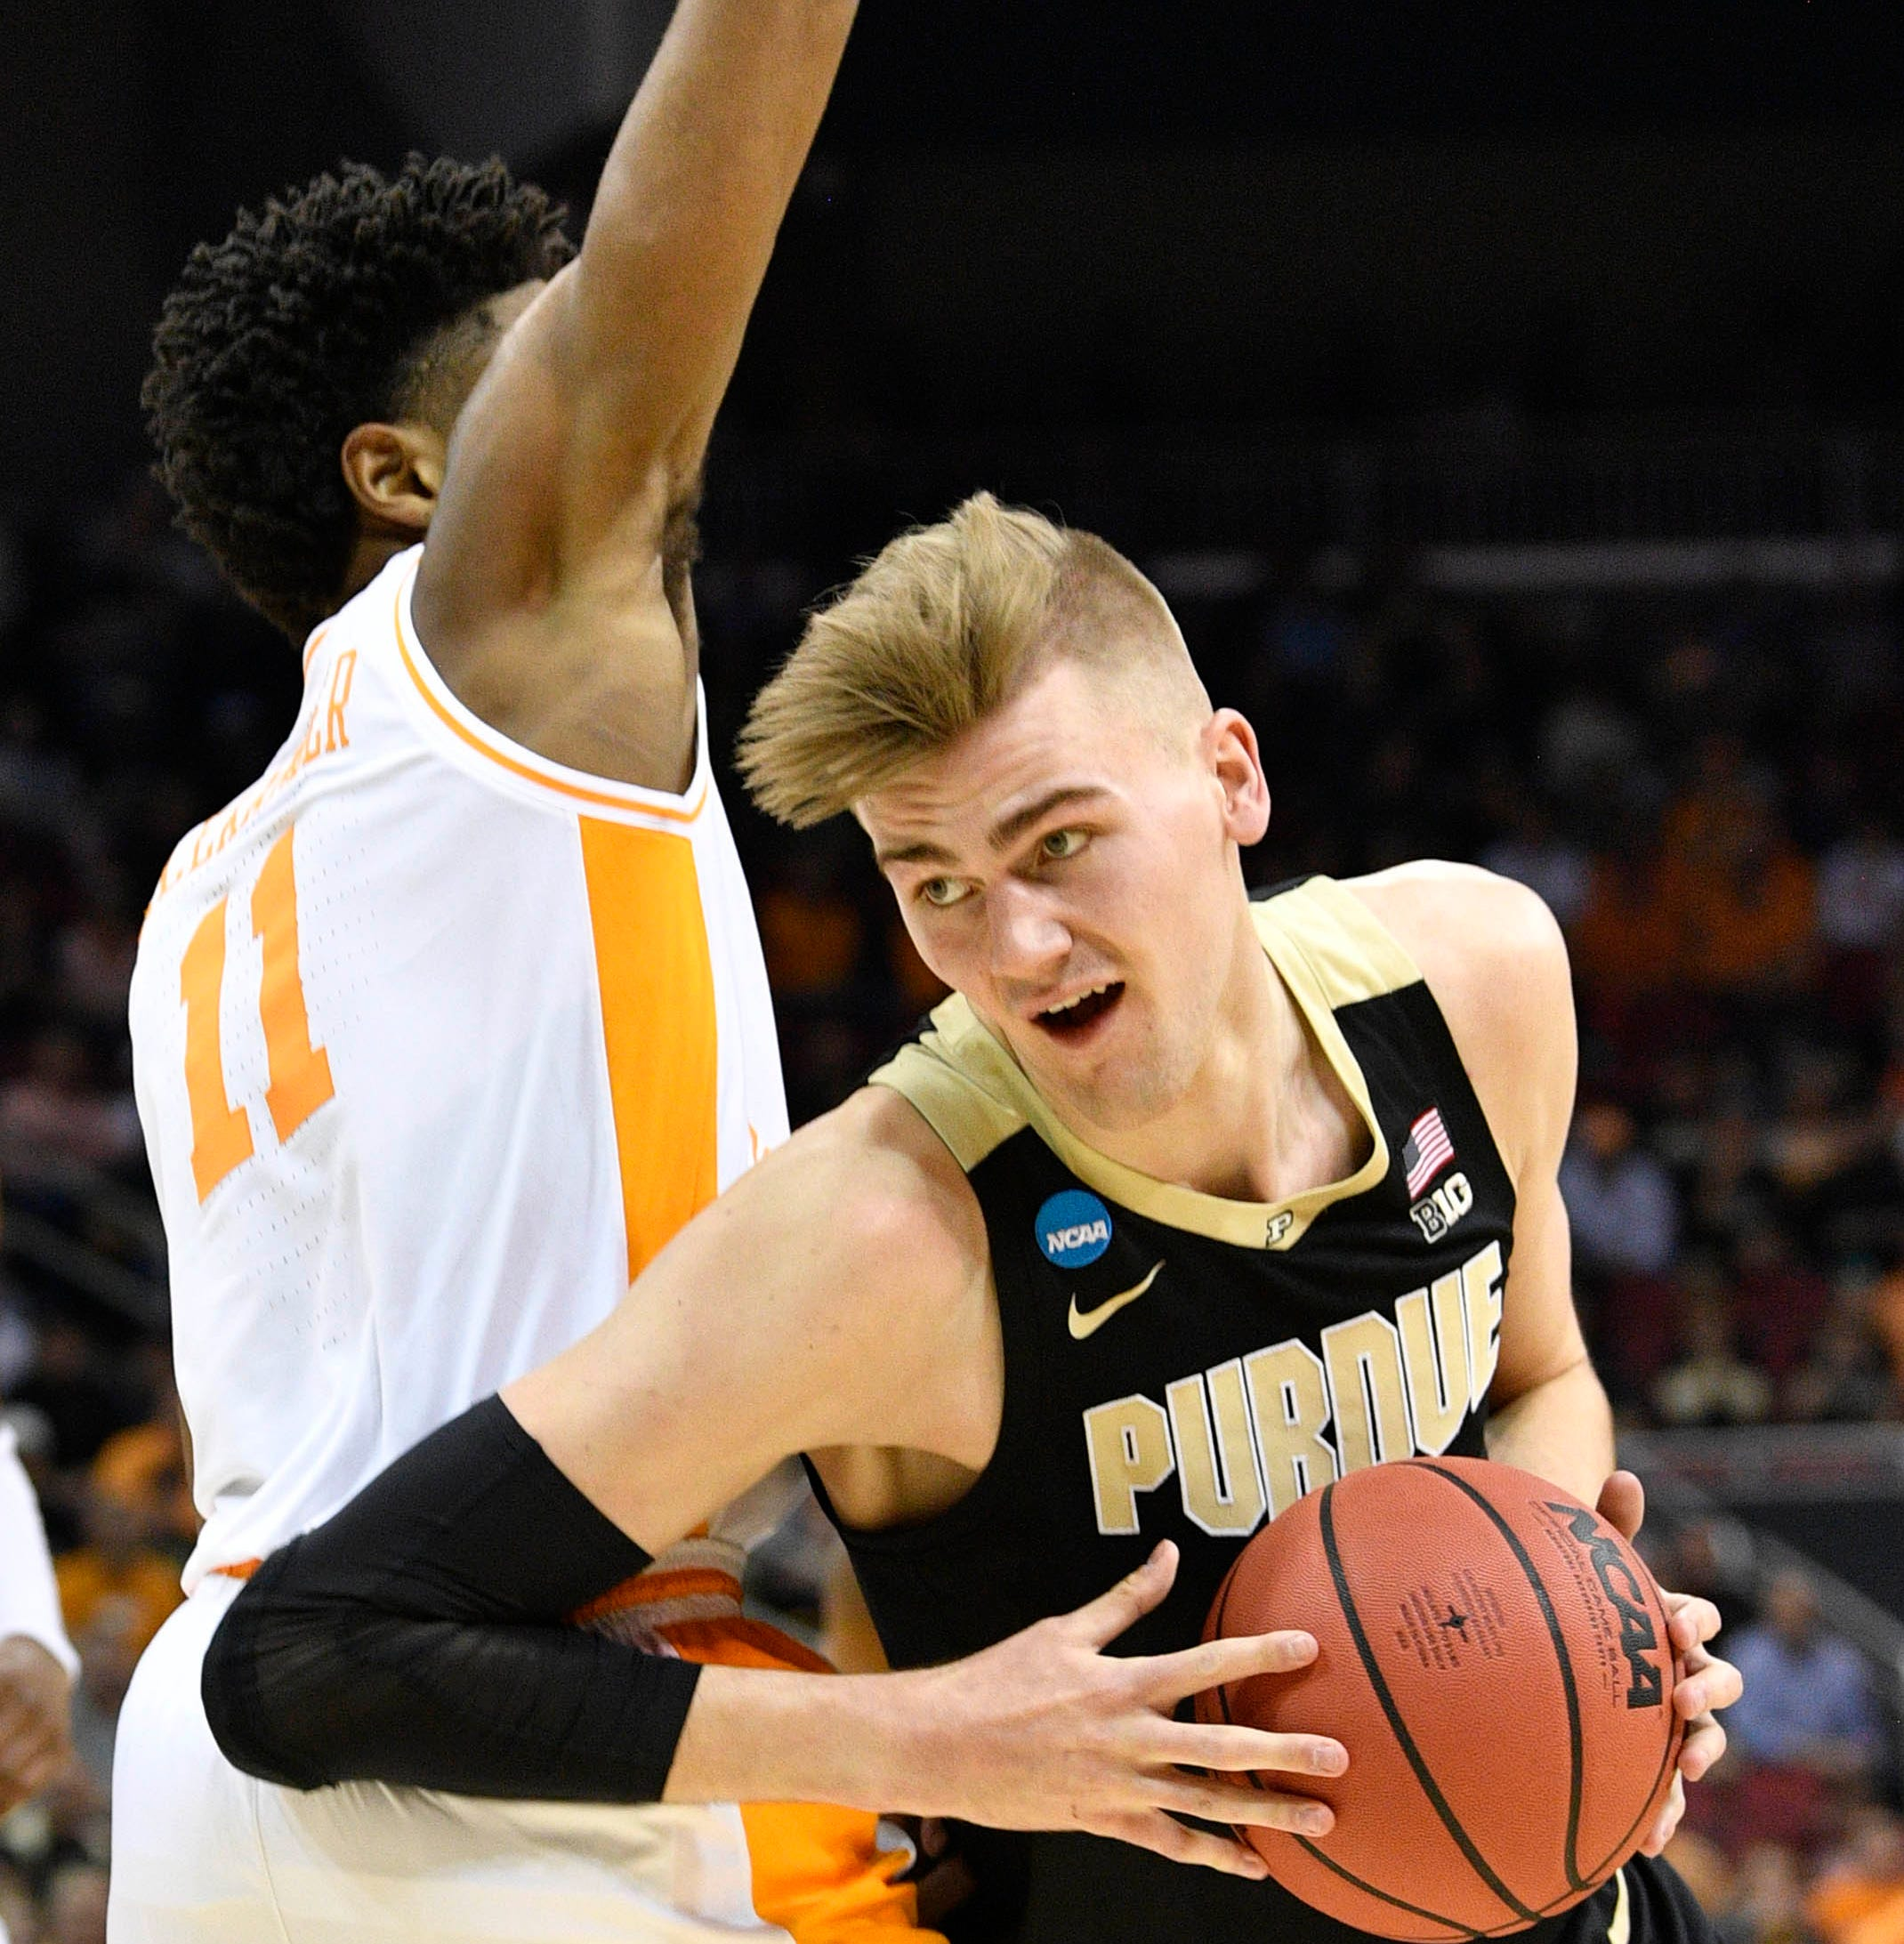 NCAA Tournament 2019: Purdue vs. Tennessee basketball video highlights, score